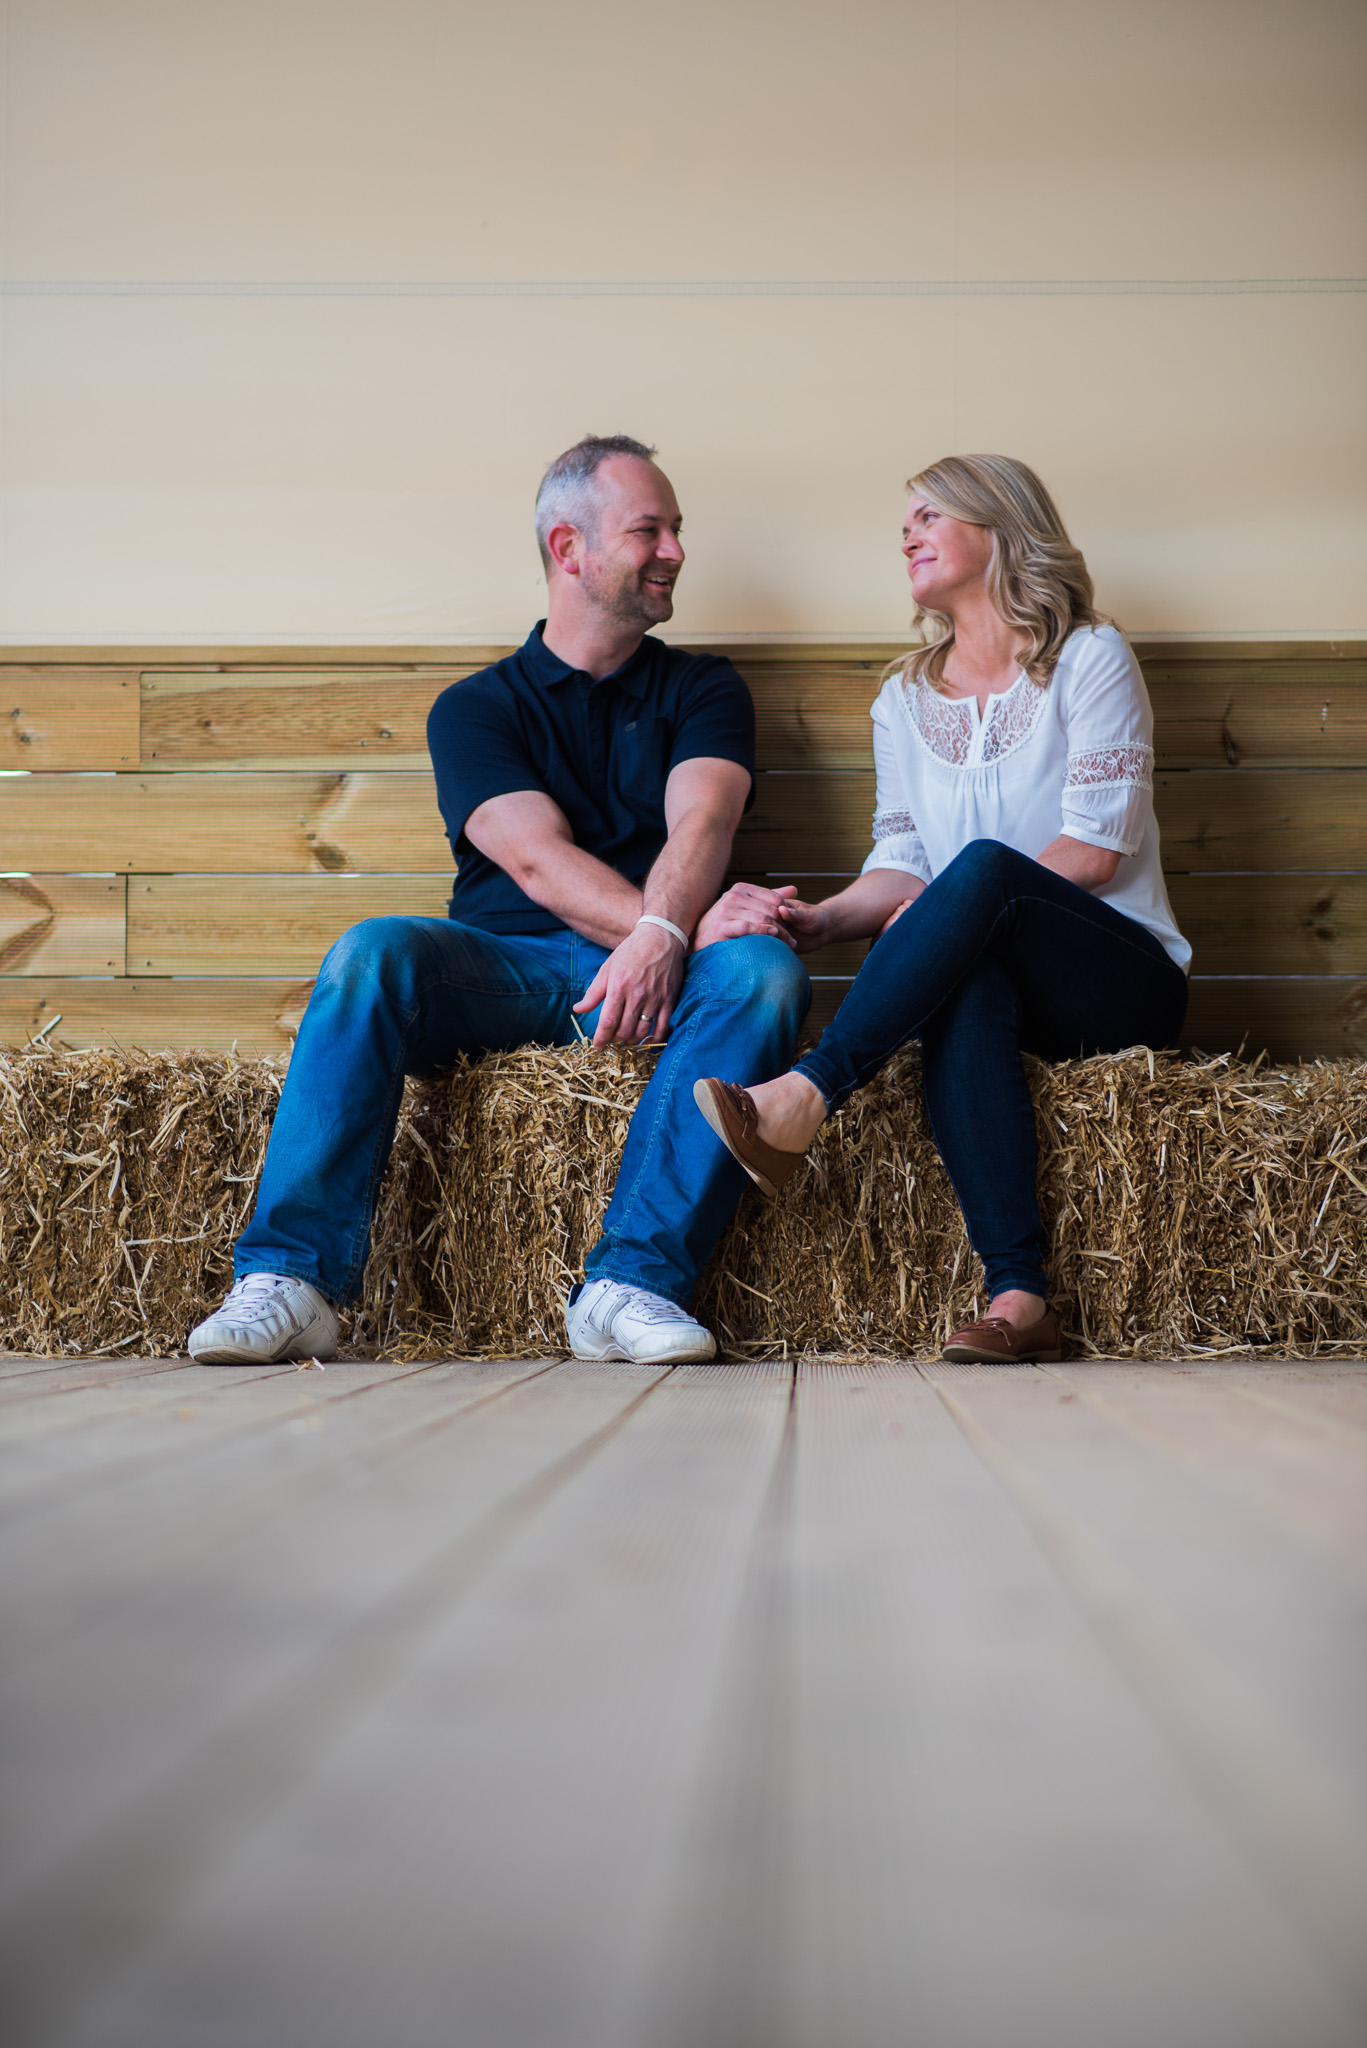 Inside barn at Dalduff Farm for Engagement Session